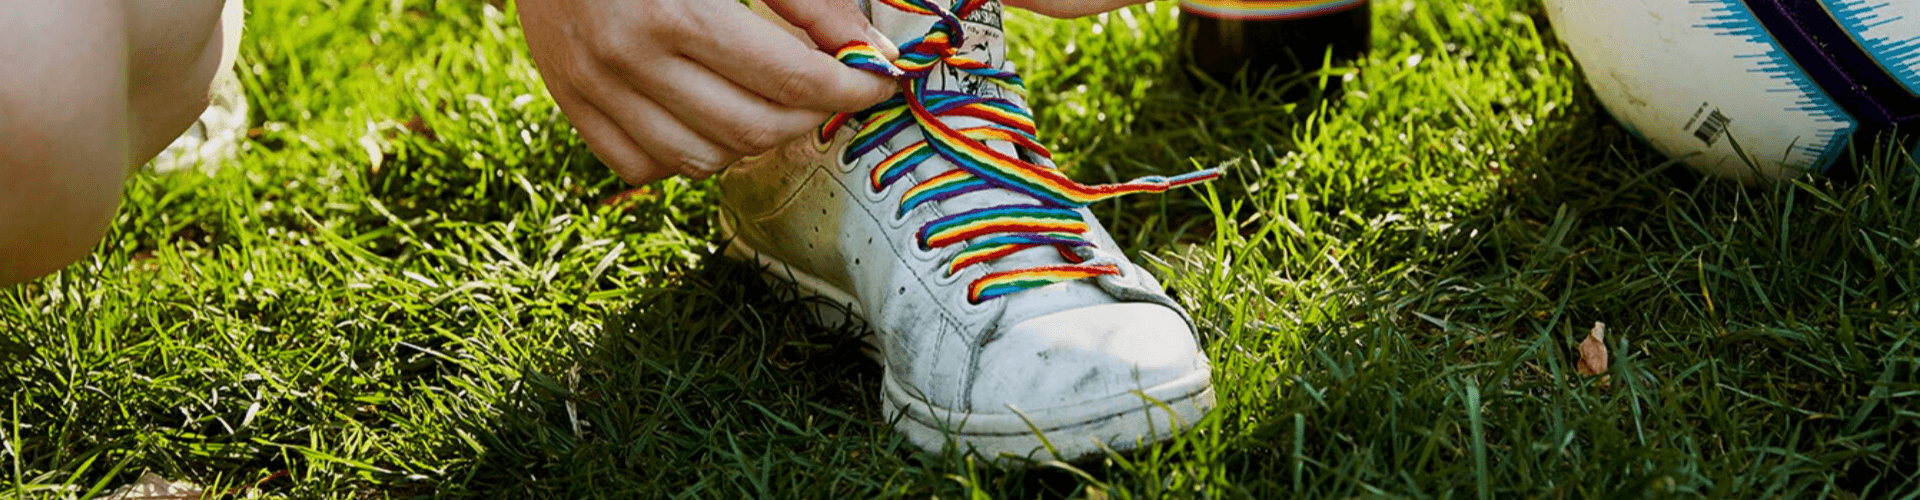 A shoe with Rainbow Laces